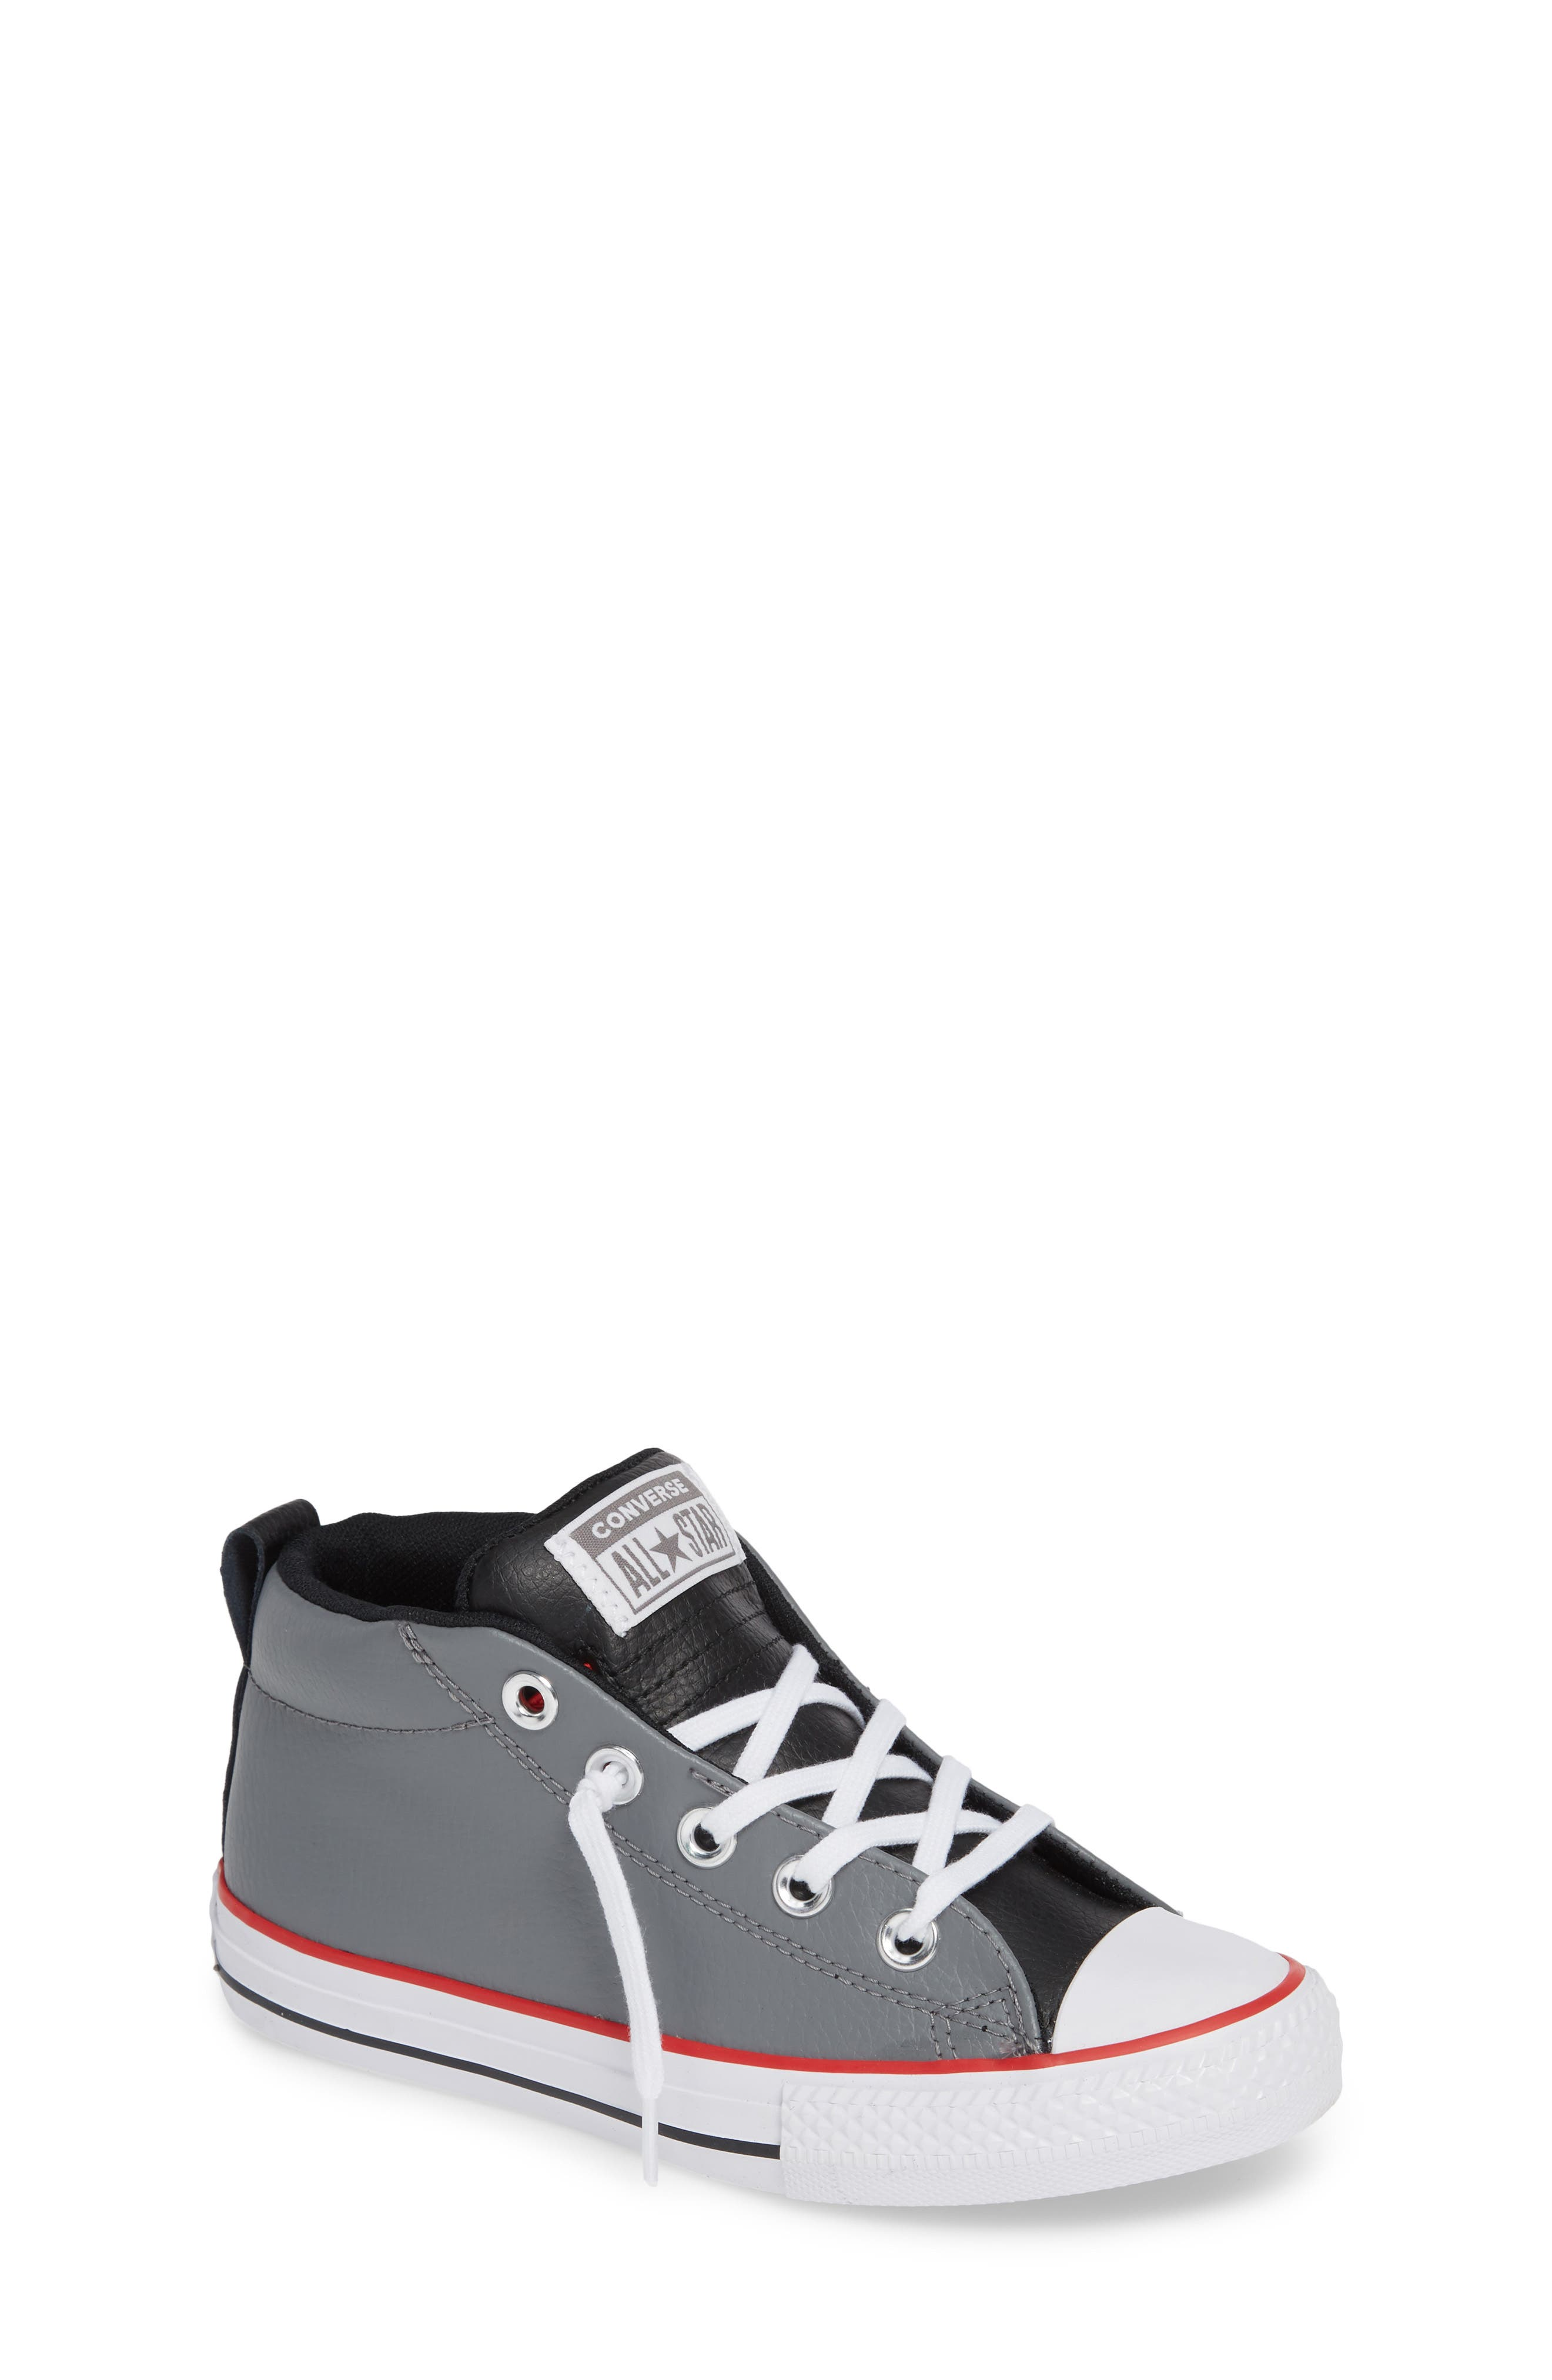 Collegiate Street Mid Sneaker,                             Main thumbnail 1, color,                             001